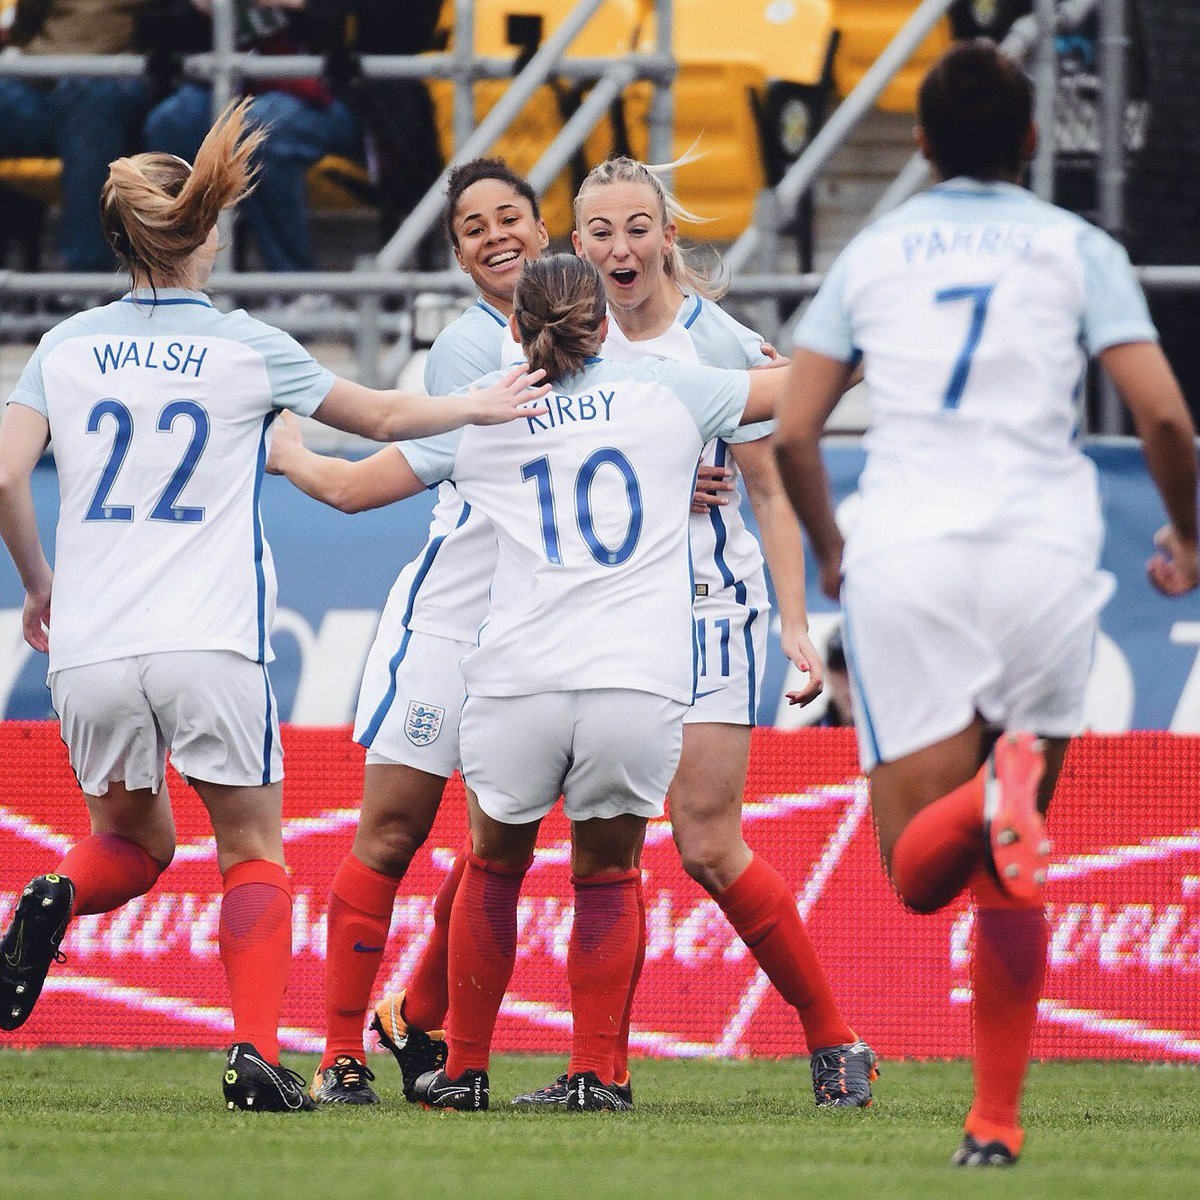 #TFW your hard work pays off 👯👯  Yesterday's match reaction 📰 http://the-fa.com/6aaC9b